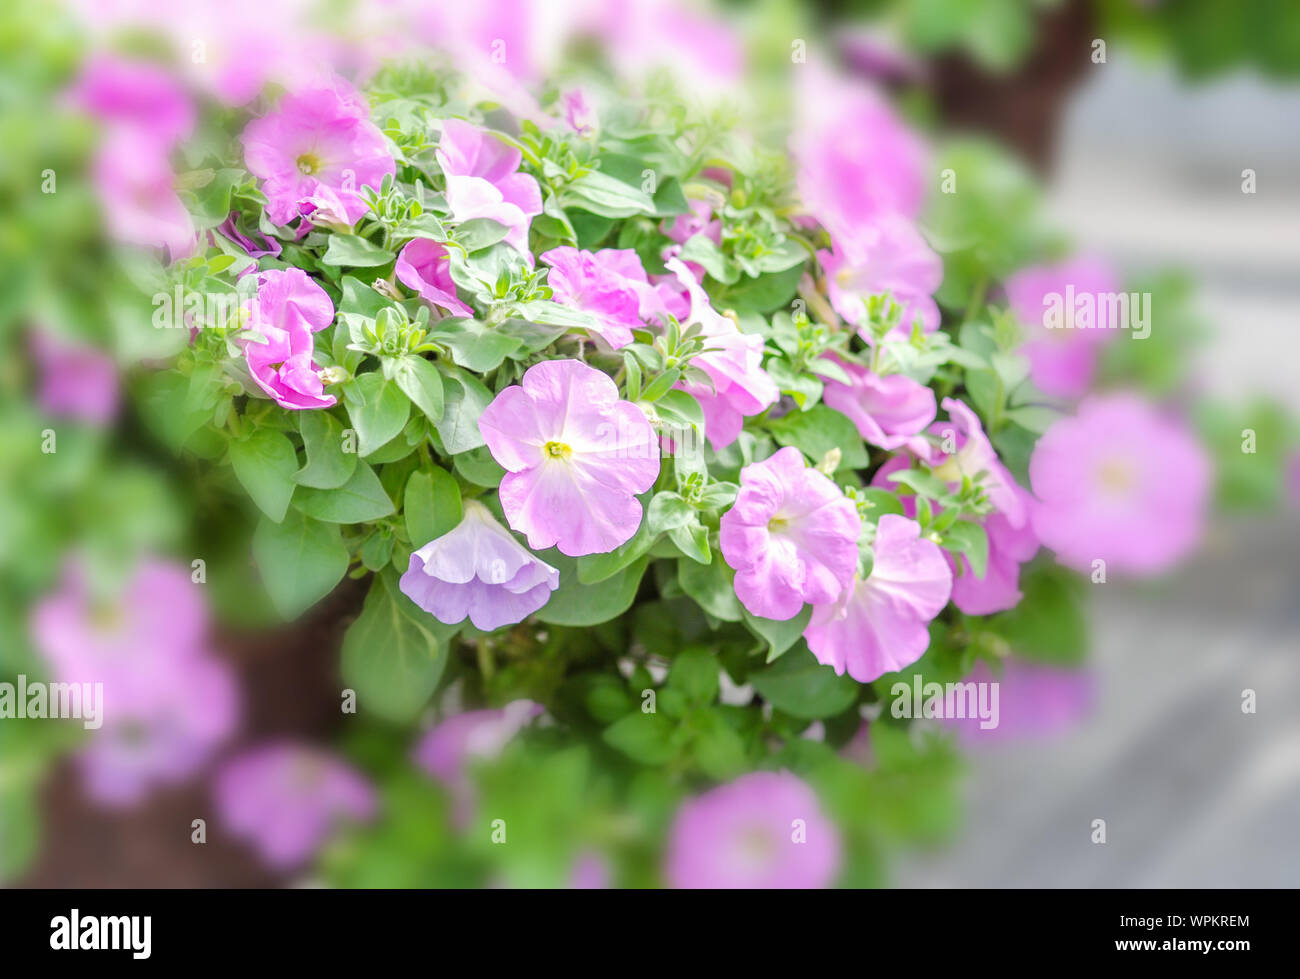 Colorful petunia flowers, Grandiflora is the most popular variety of petunia, with large single or double flowers that form mounds of colorful solid, Stock Photo